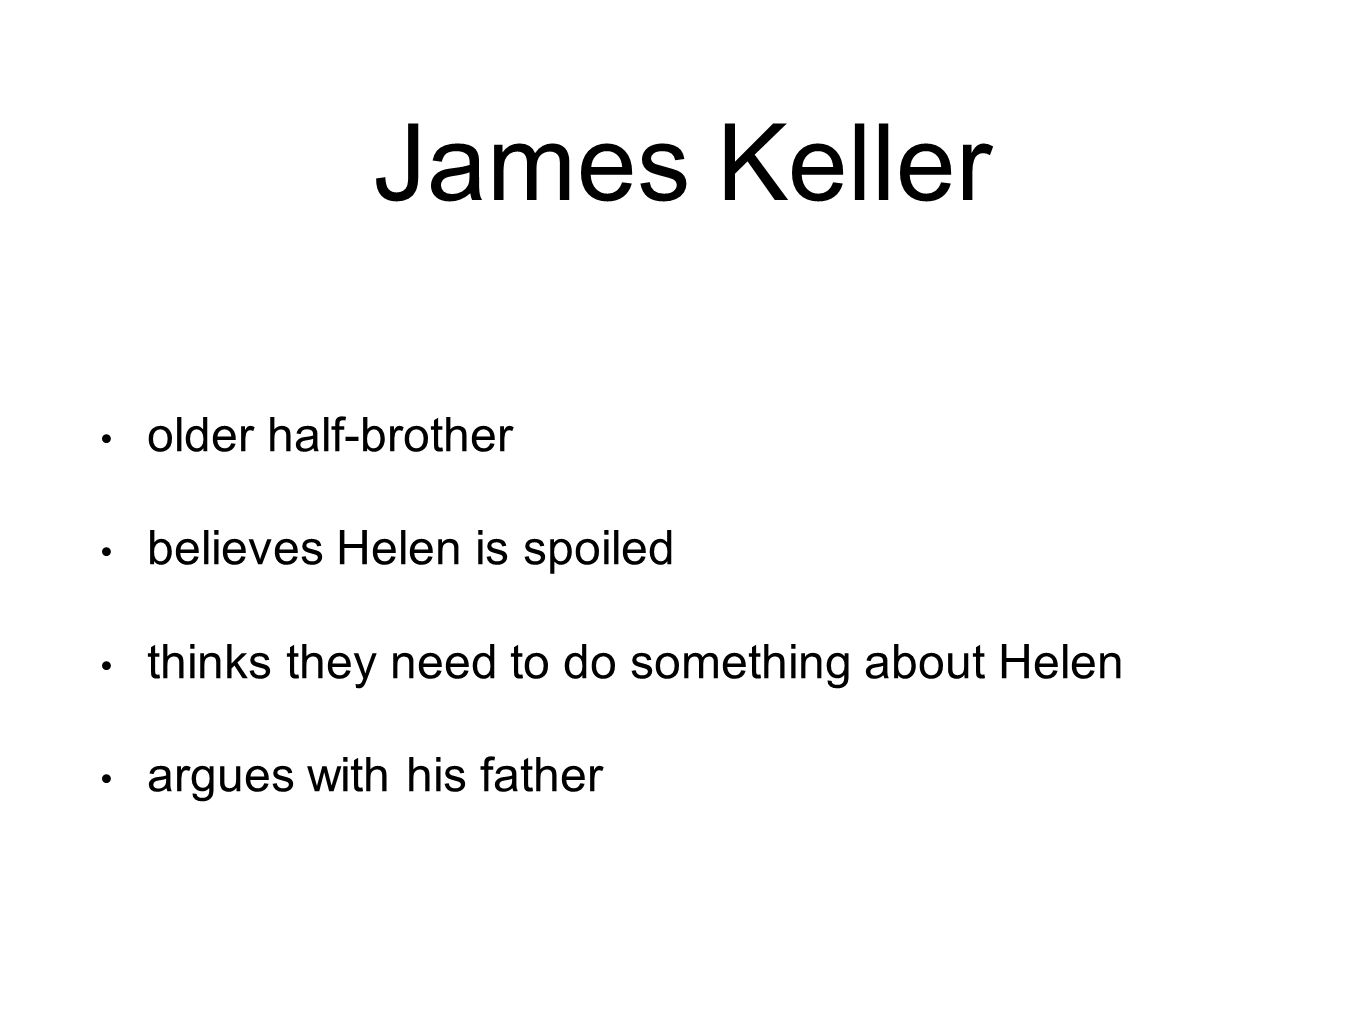 James Keller older half-brother believes Helen is spoiled thinks they need to do something about Helen argues with his father